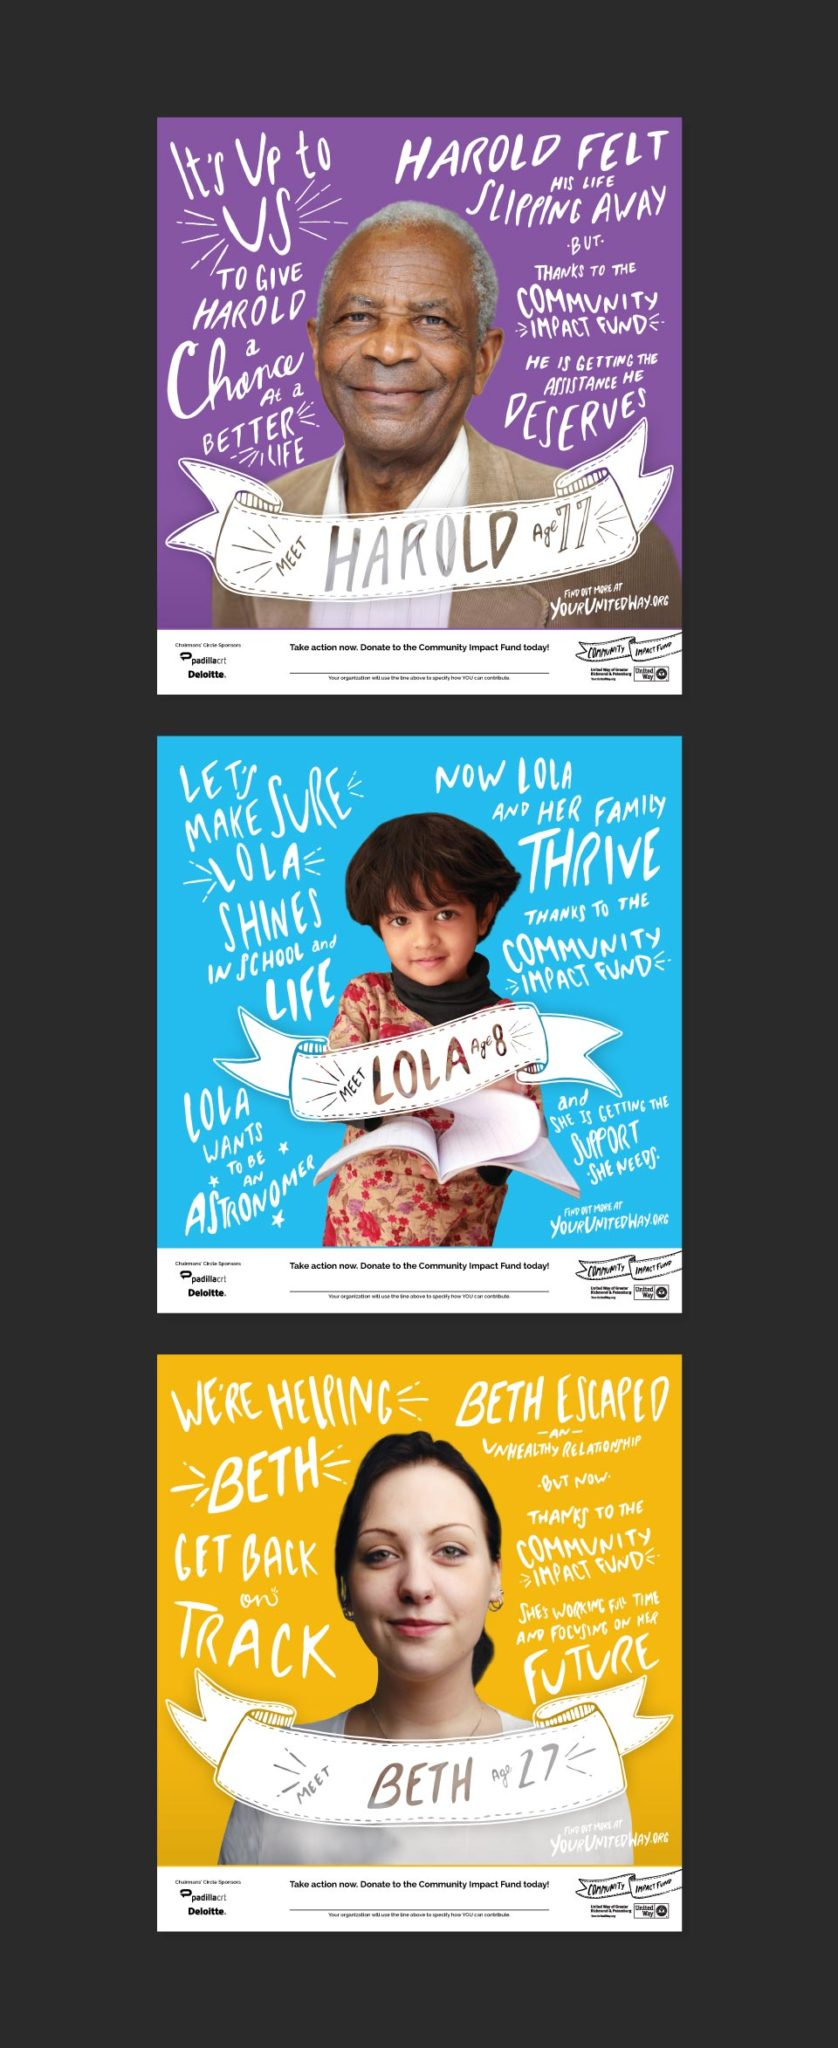 United Way posters showing a person and a handwritten story